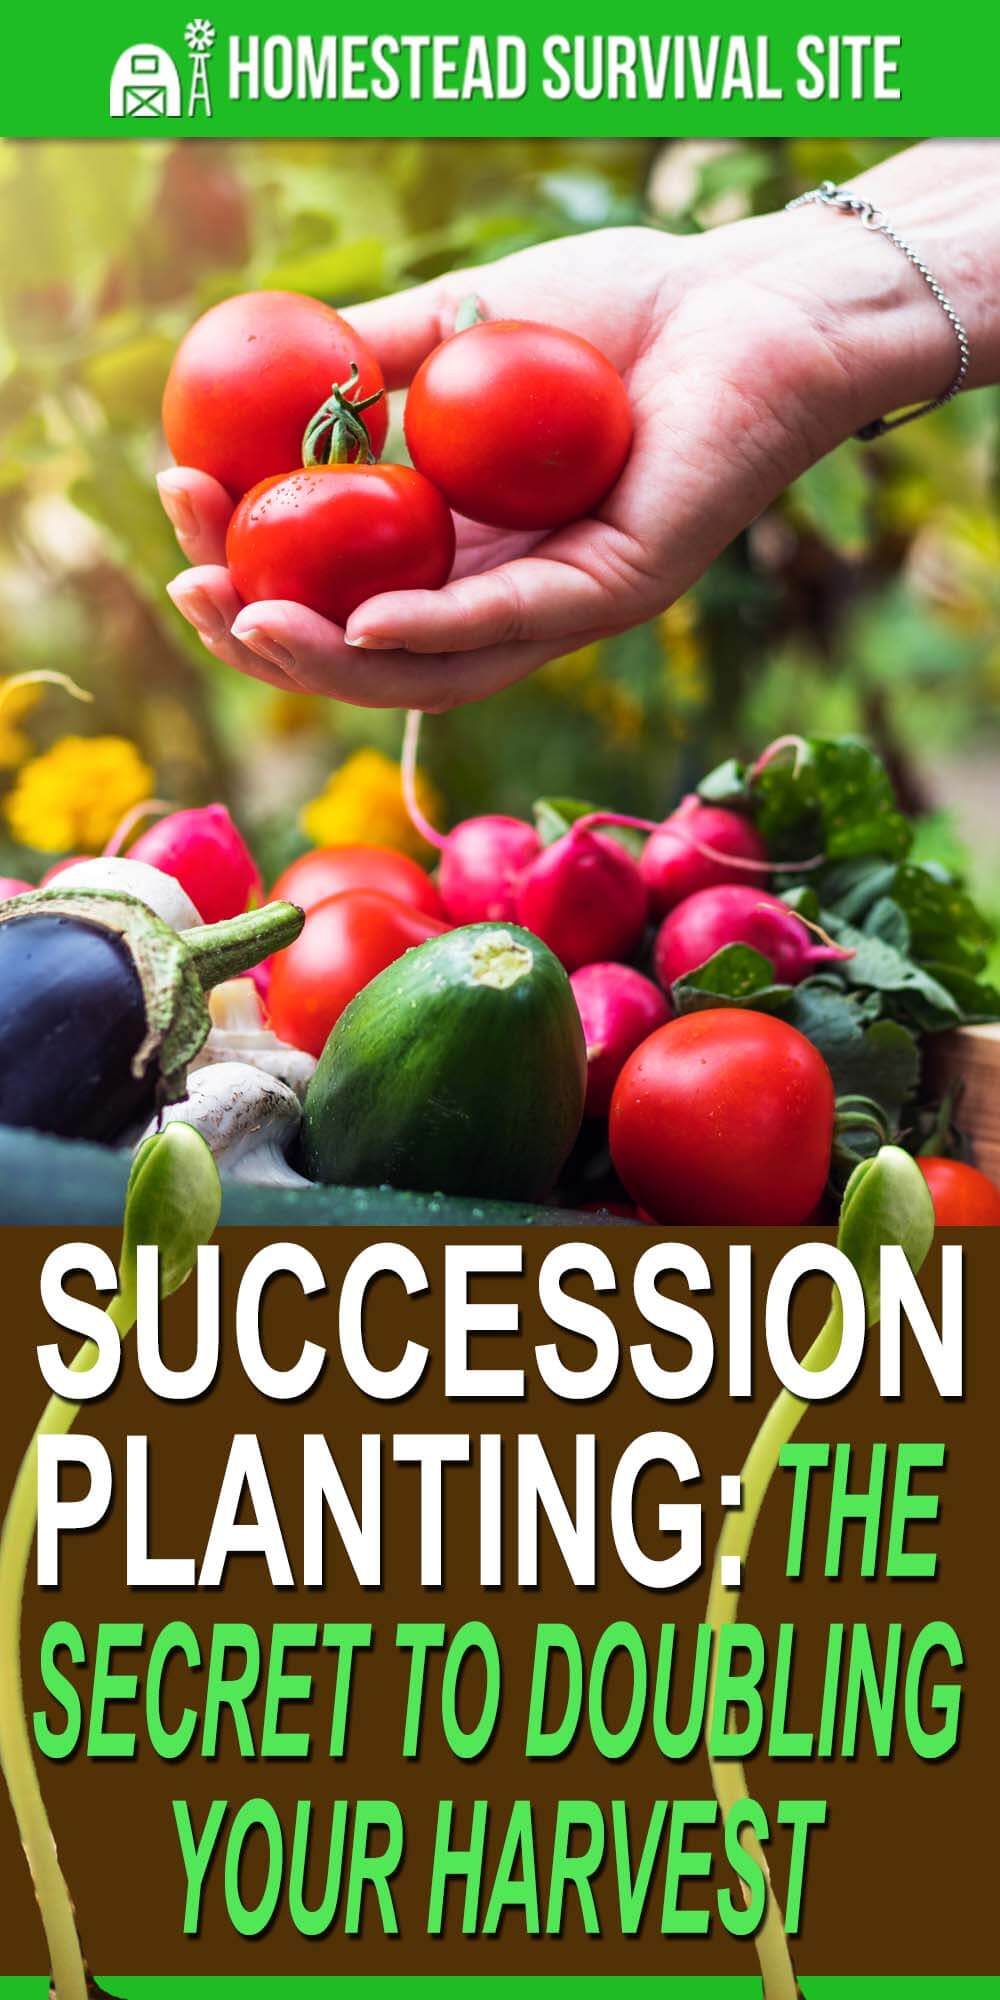 Succession Planting: The Secret to Doubling Your Harvest